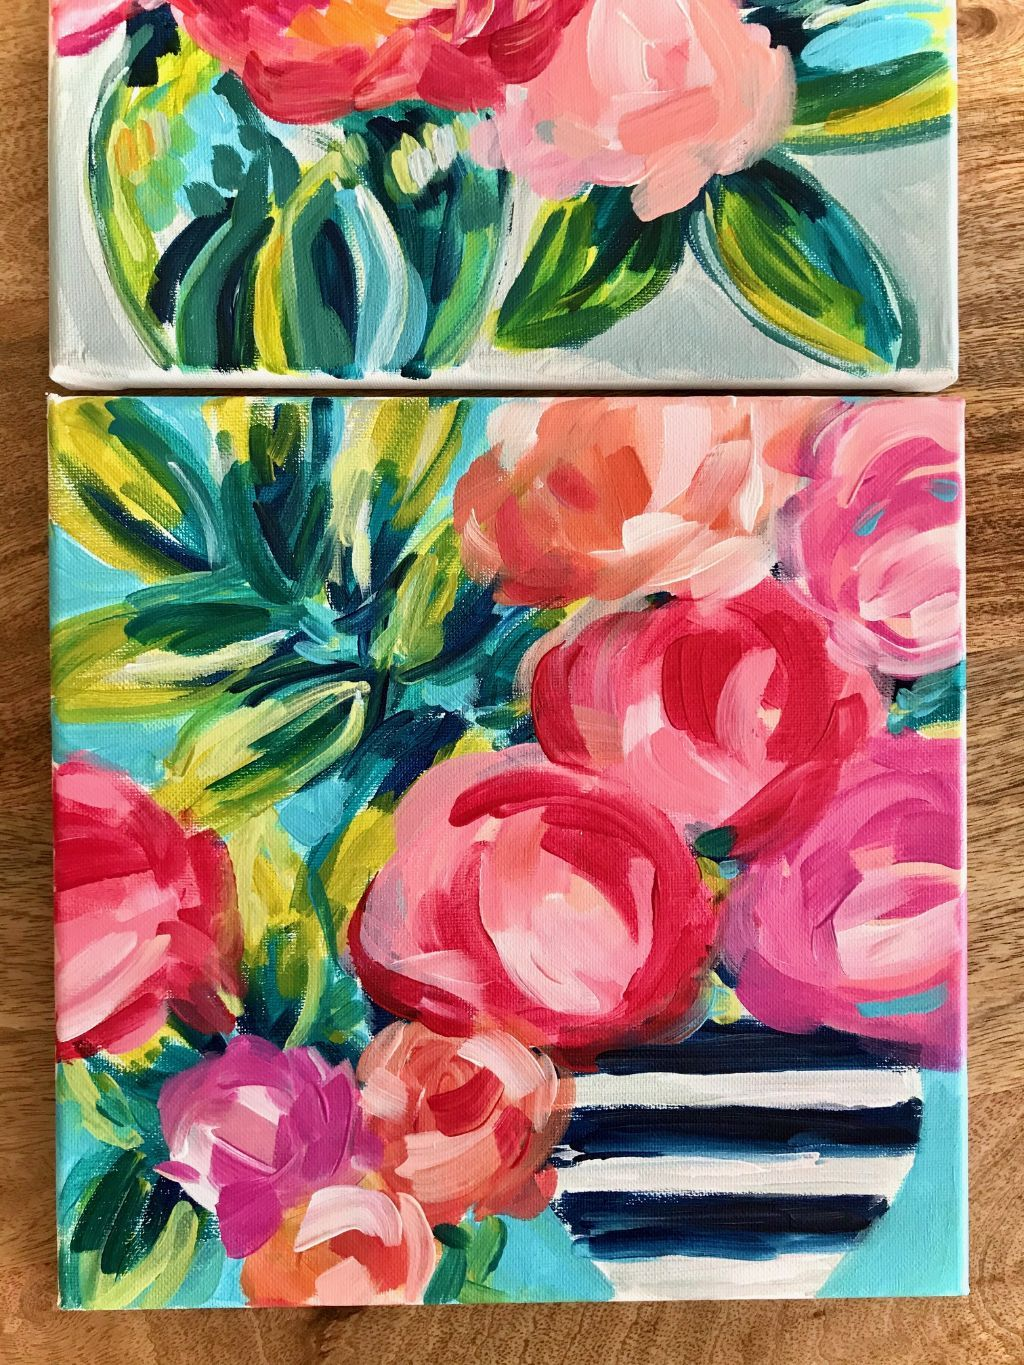 How To Paint Flowers With Acrylics On Canvas Simple Step By Step